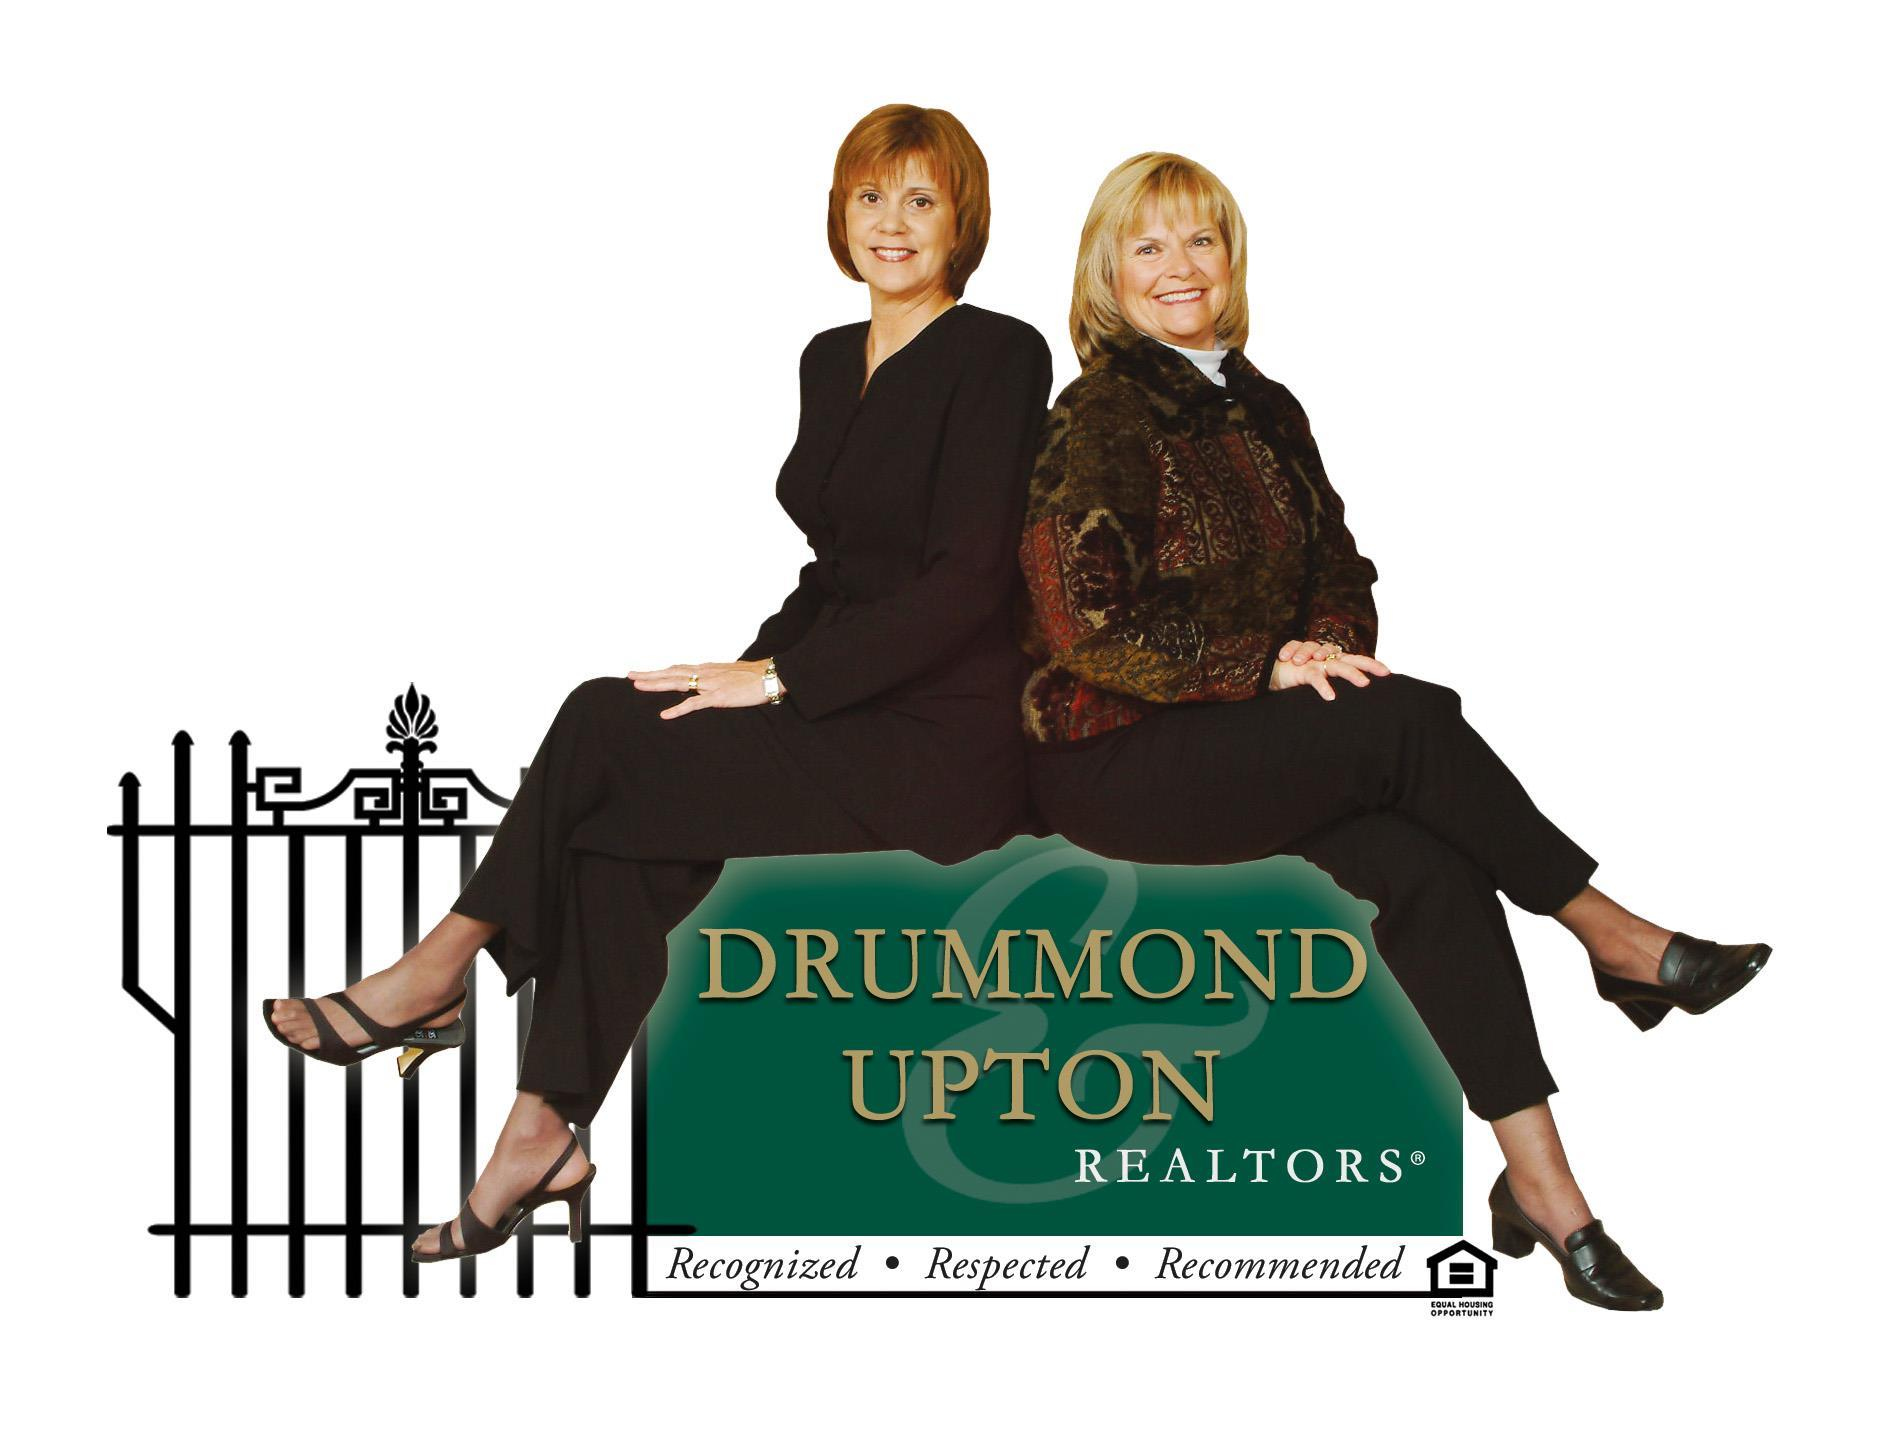 Emma Drummond and Becky Upton